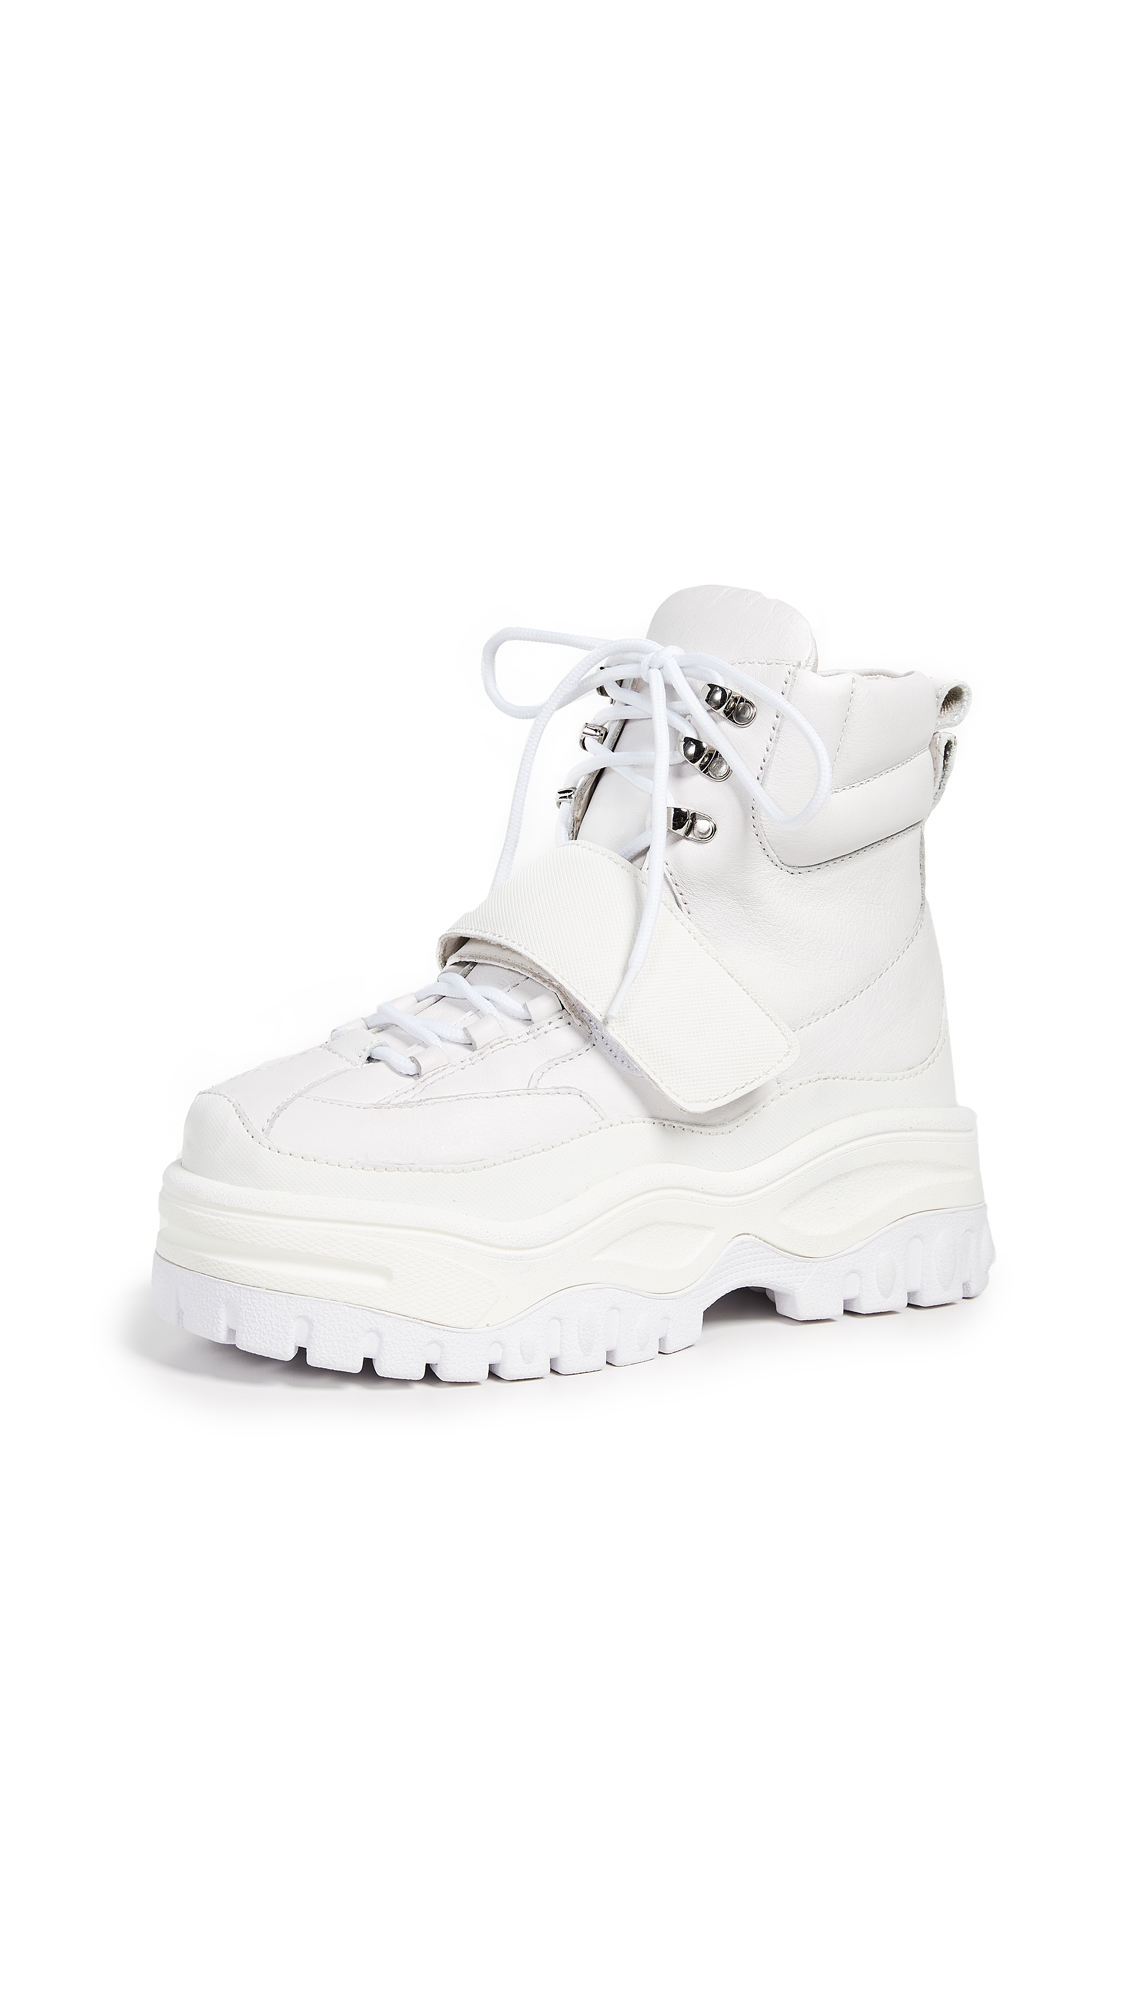 Jeffrey Campbell Fonzie High Top Sneakers - White